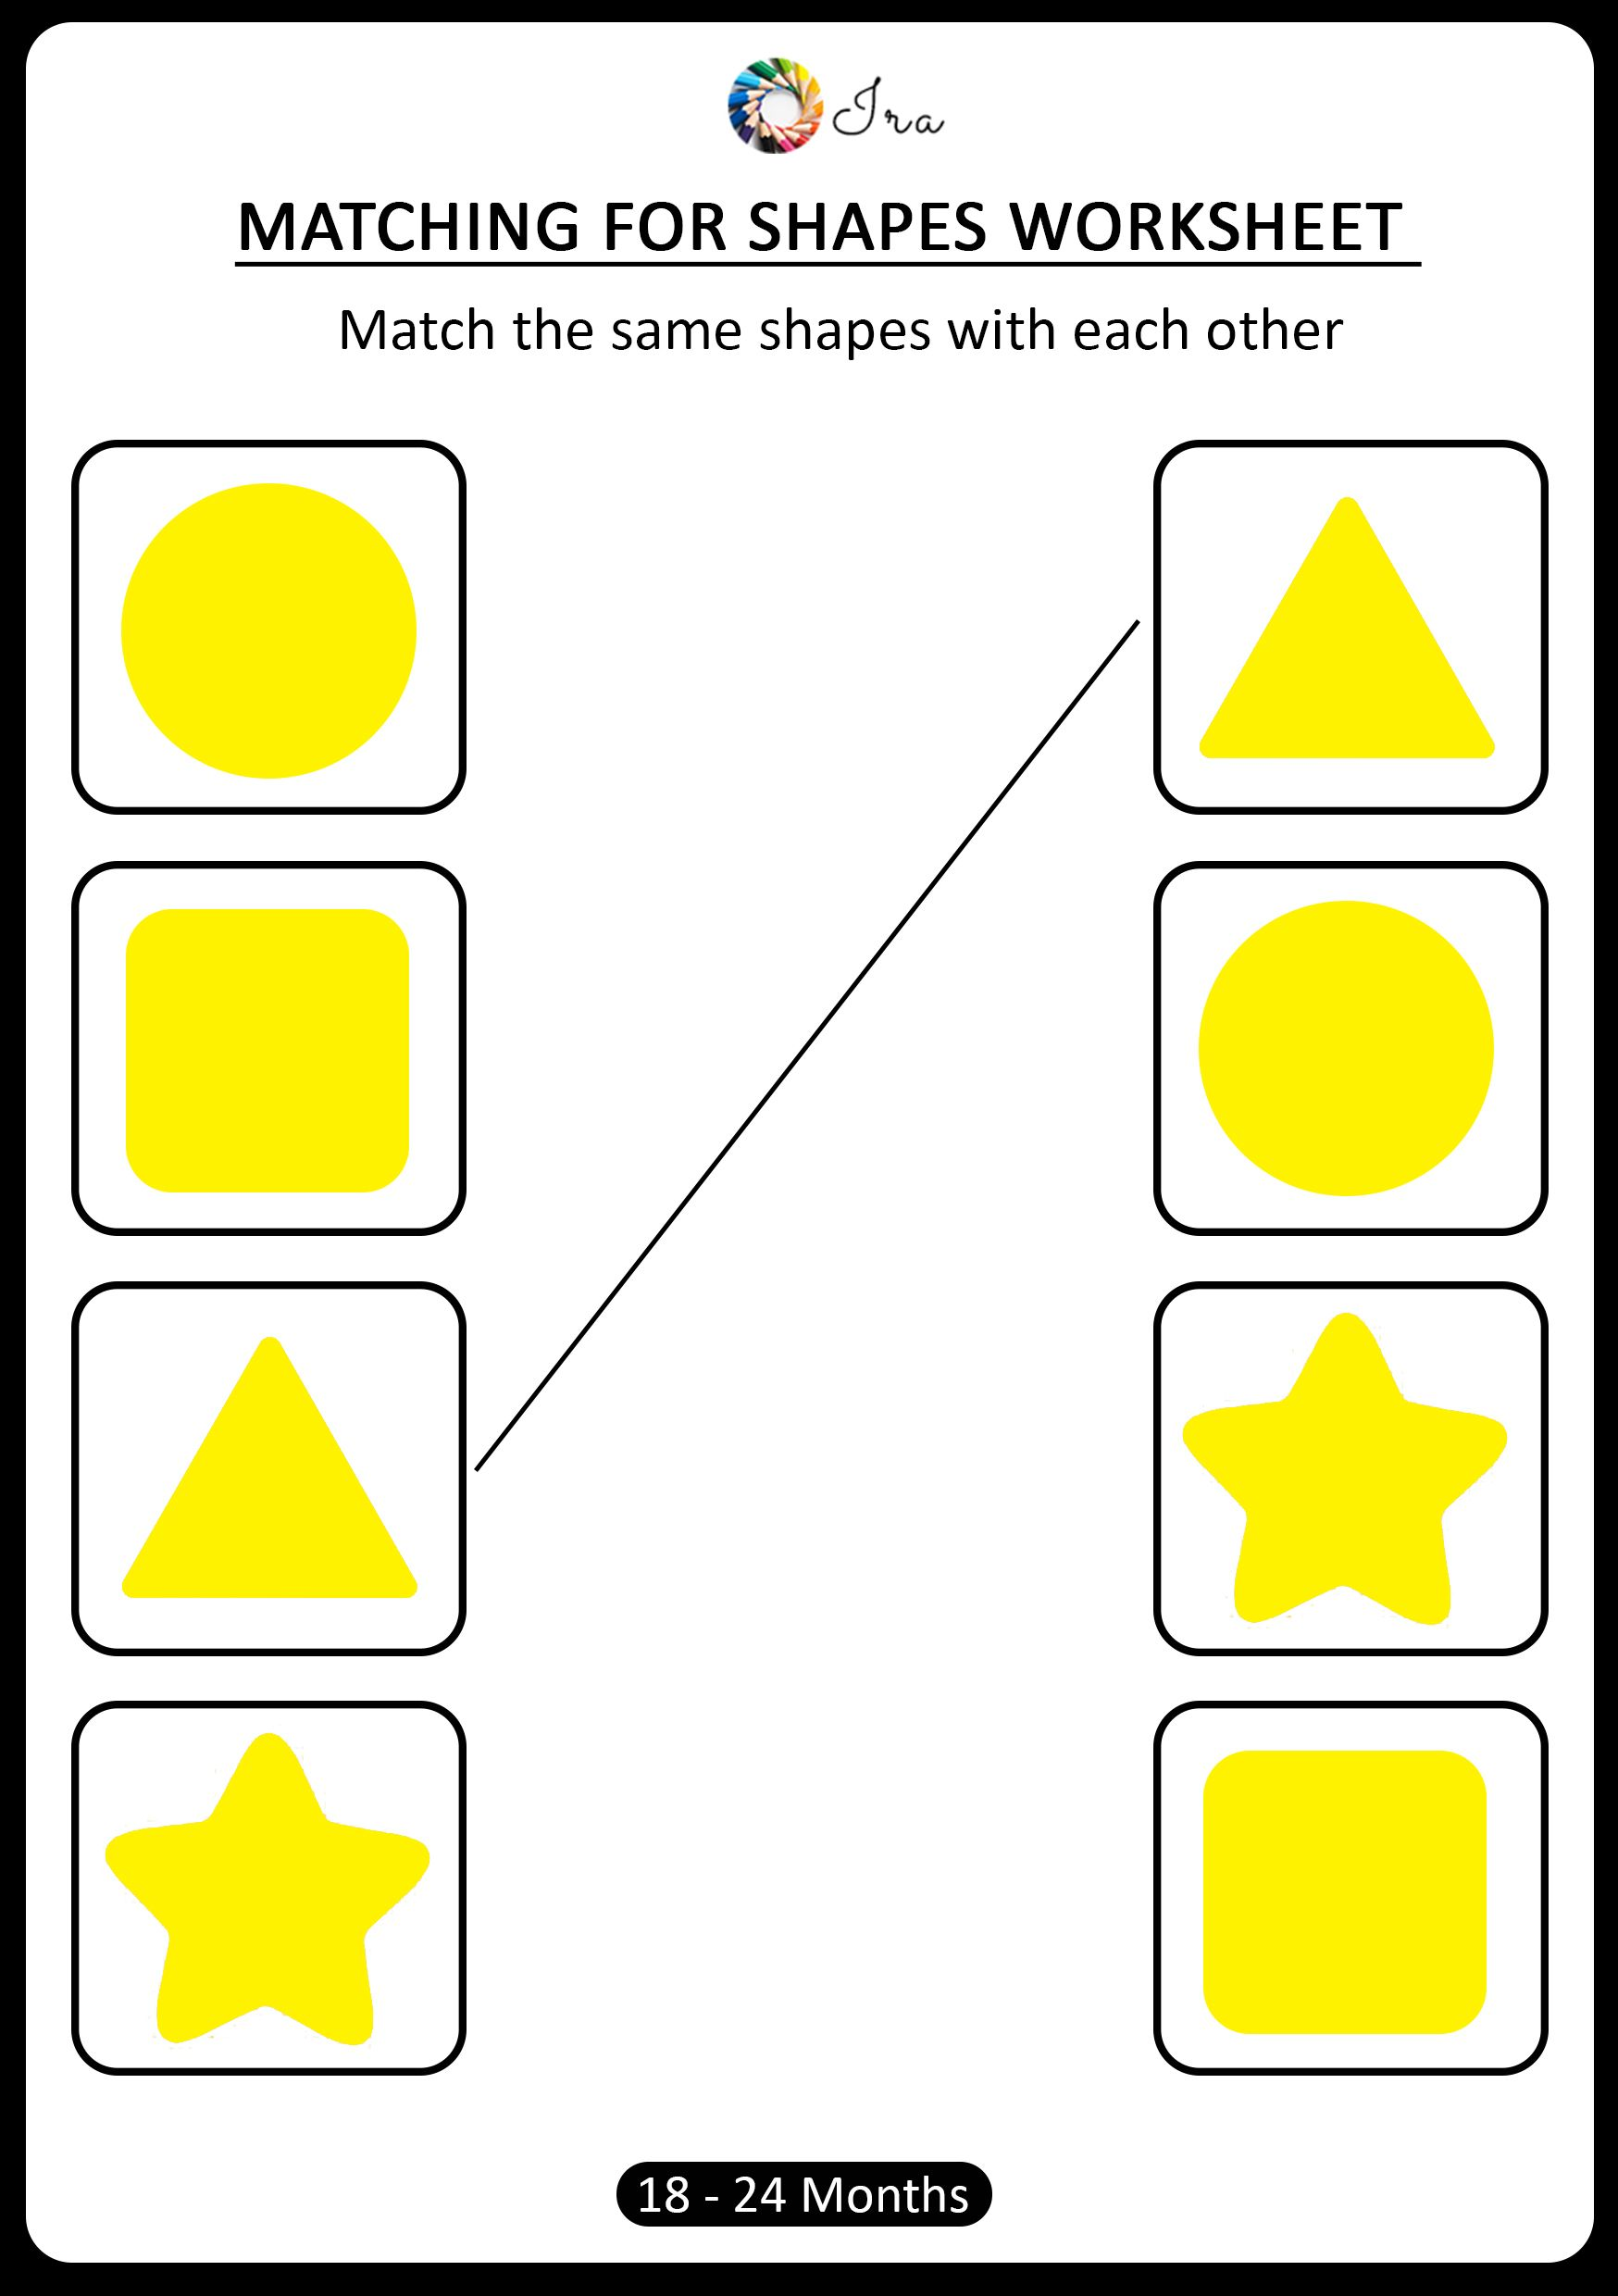 Pin On 18 24 Months Matching For Shapes Worksheets For Kids